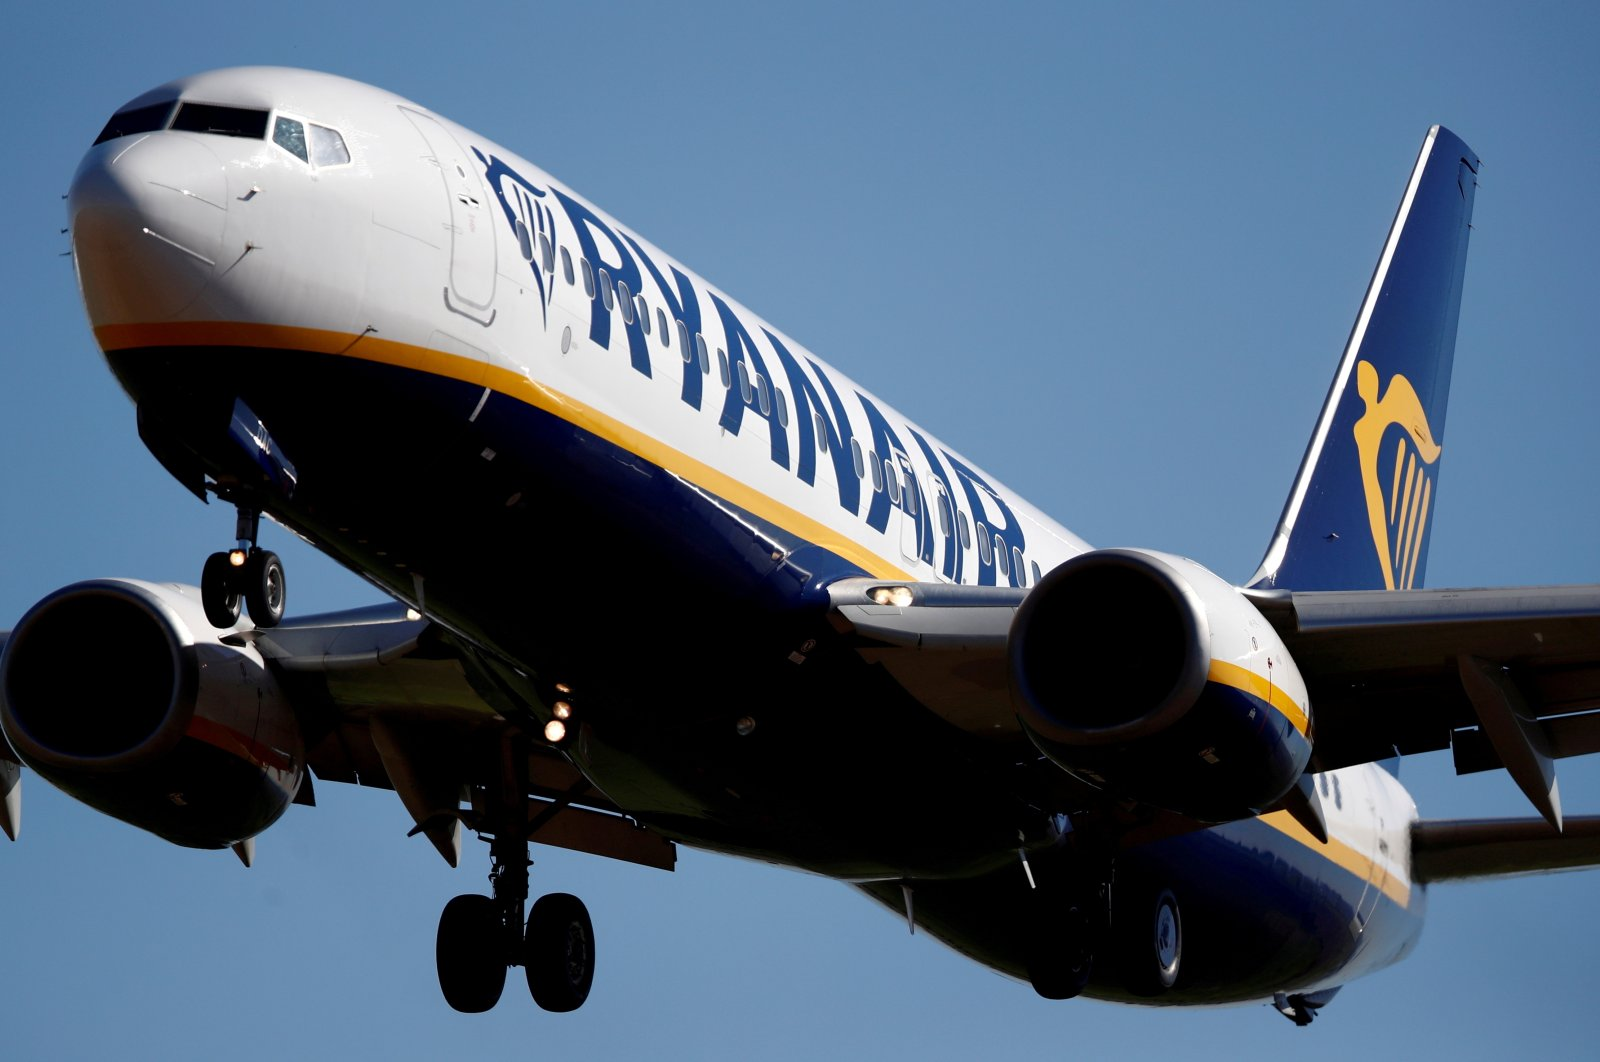 A Ryanair Boeing 737-800 aircraft approaches Paris-Beauvais airport in Tille, northern France, Sept. 27, 2018. (Reuters Photo)